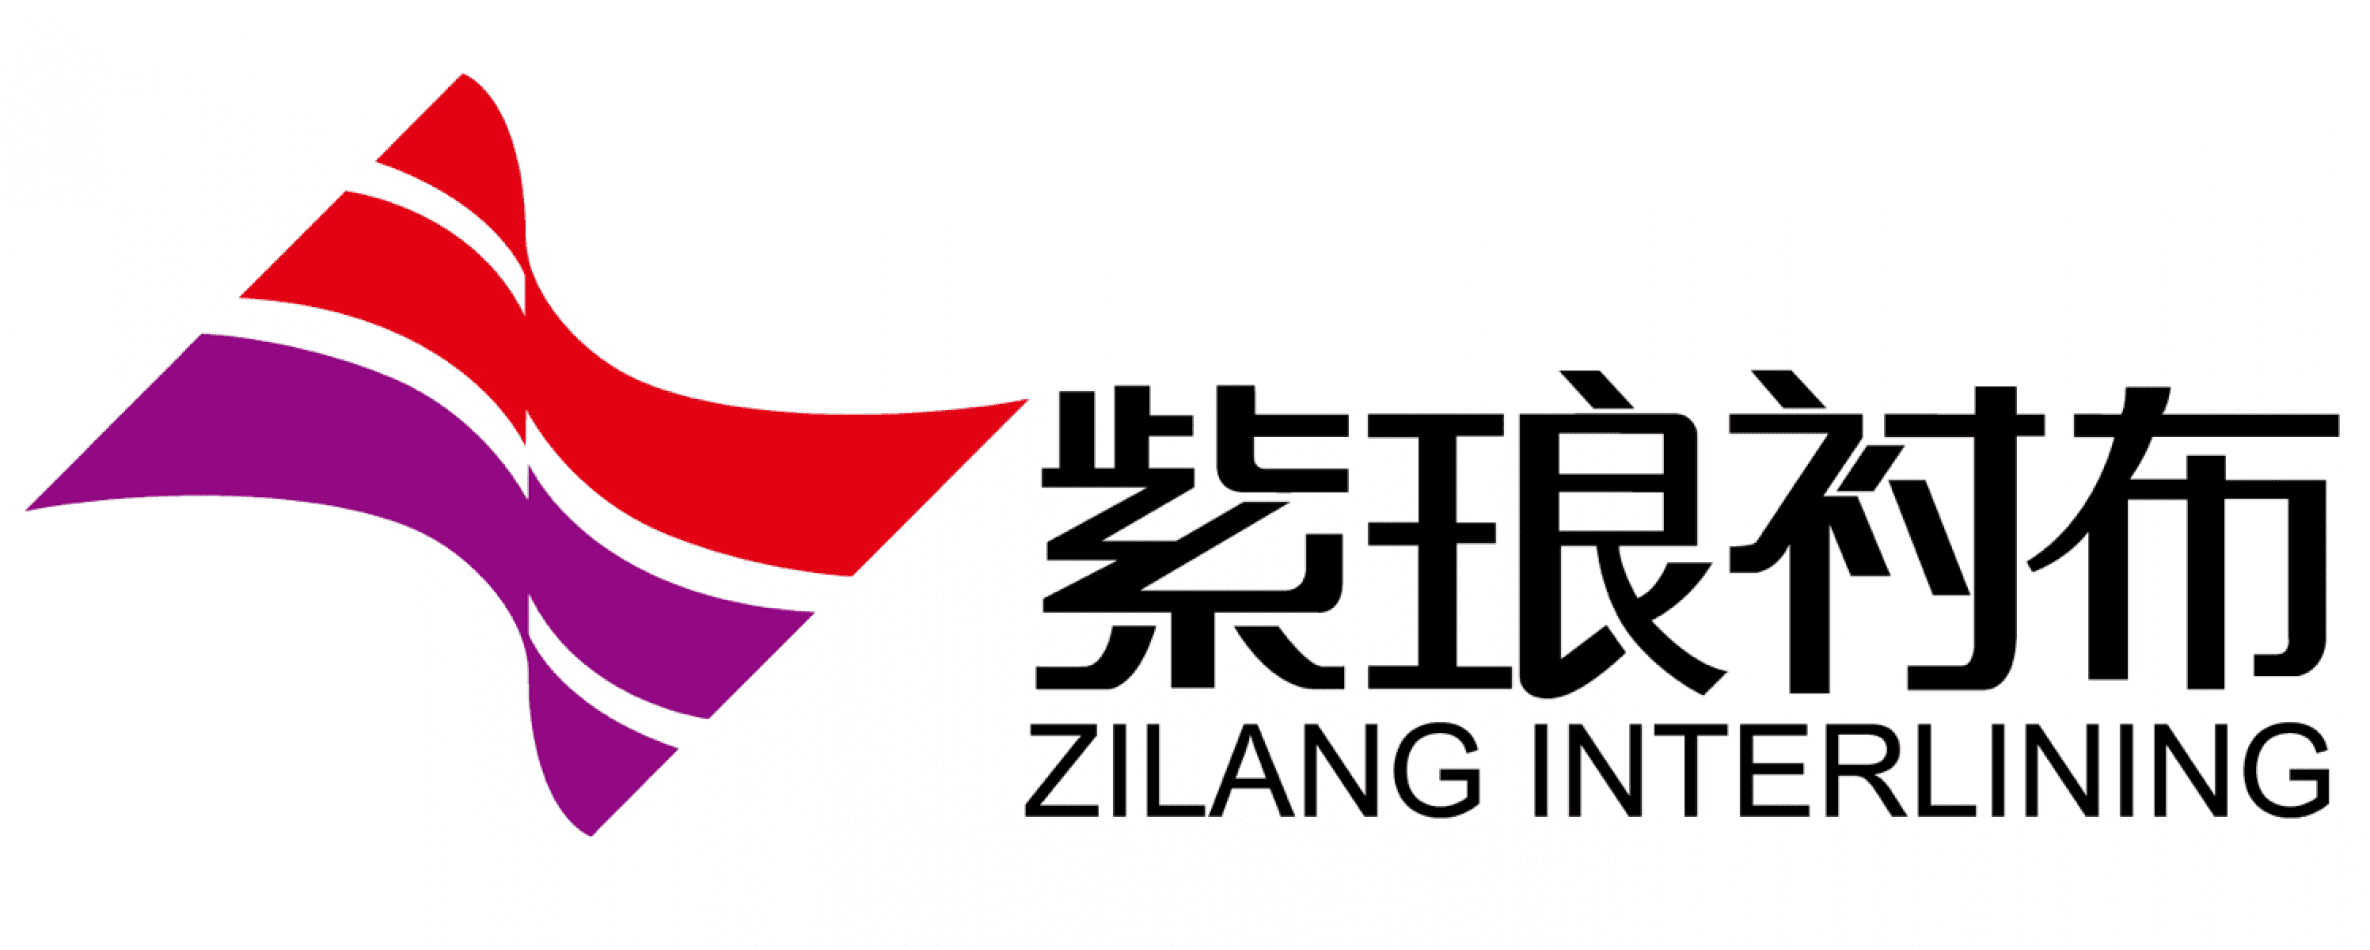 ZILANG INTERLINING (HUZHOU) CO., LTD.